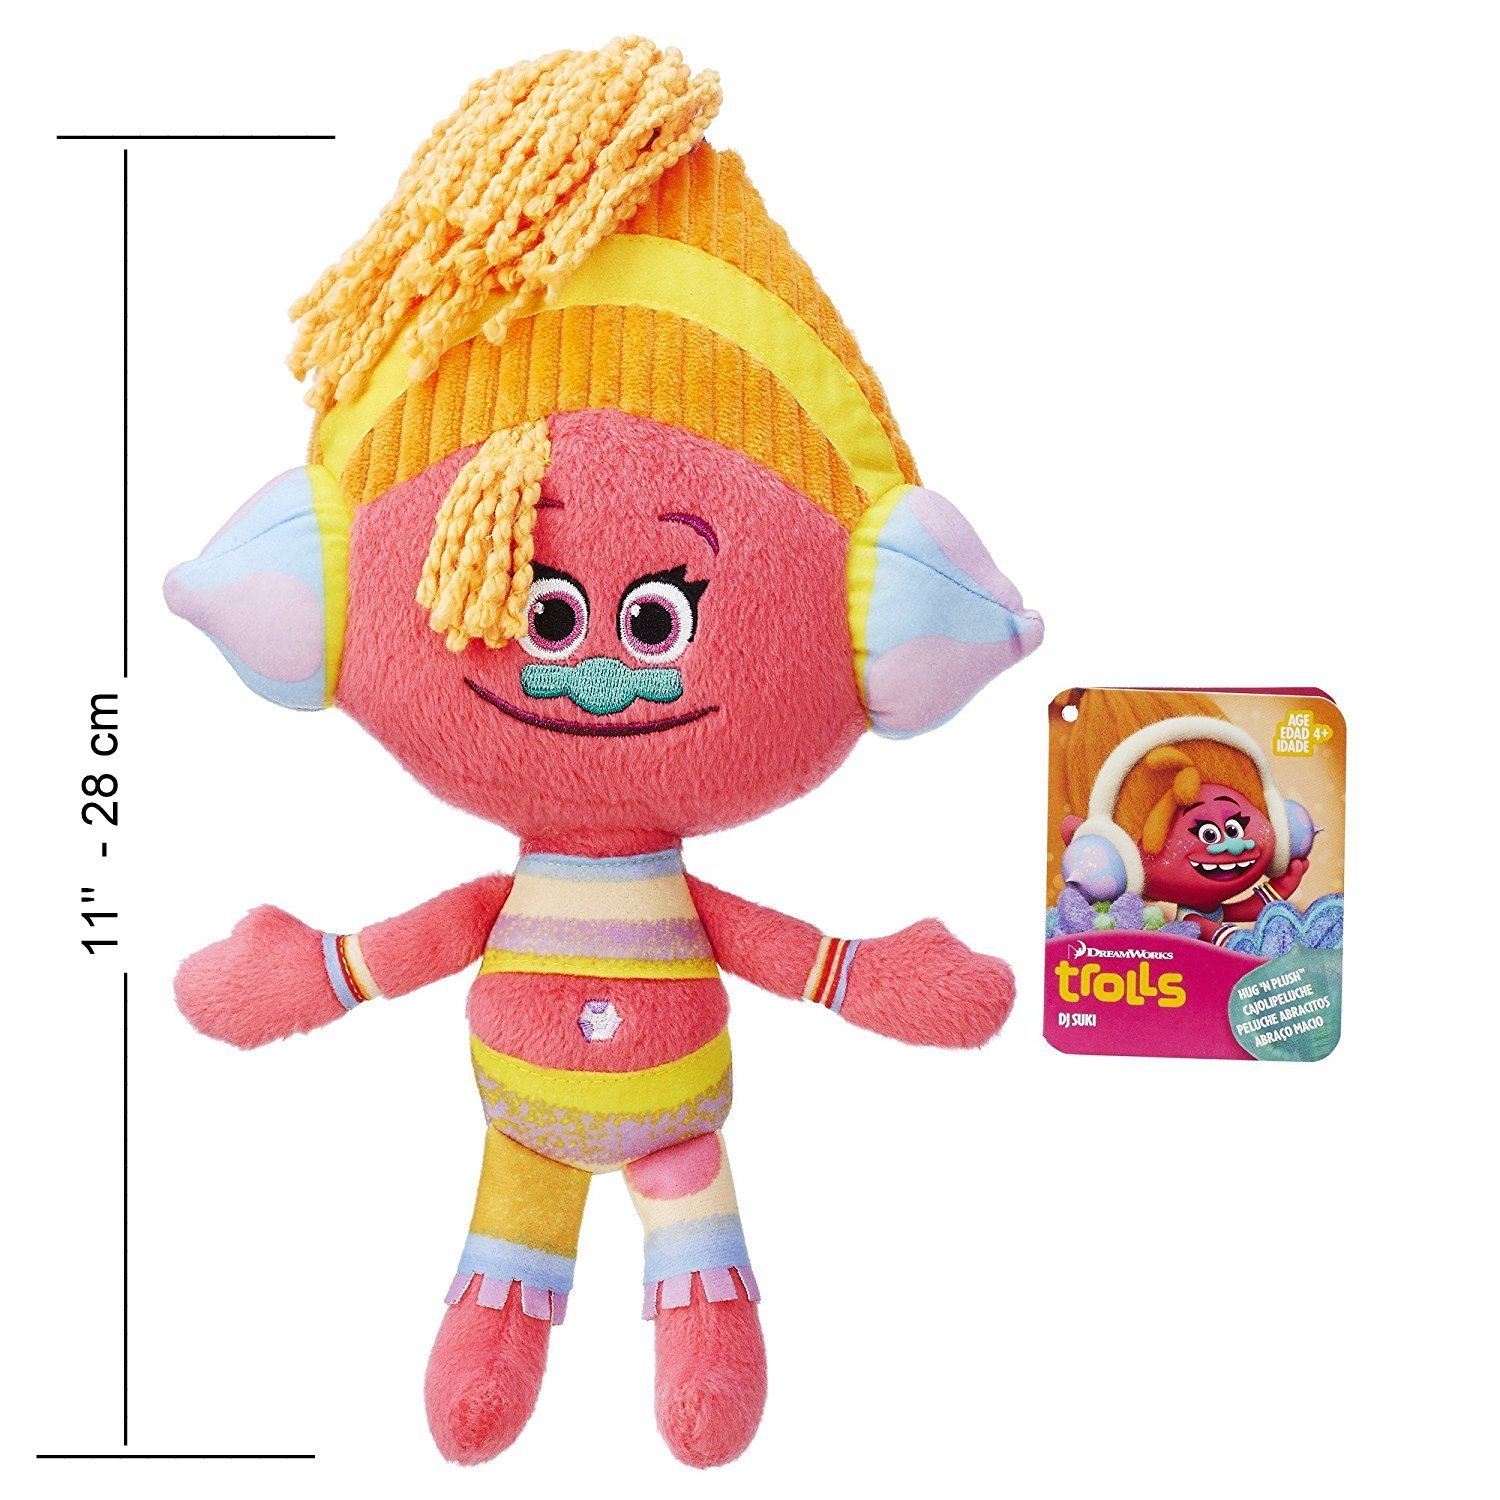 Amazon.com: Happy Trolls Poppy, Branch and DJ Suki Dreamworks Trolls Movie 8